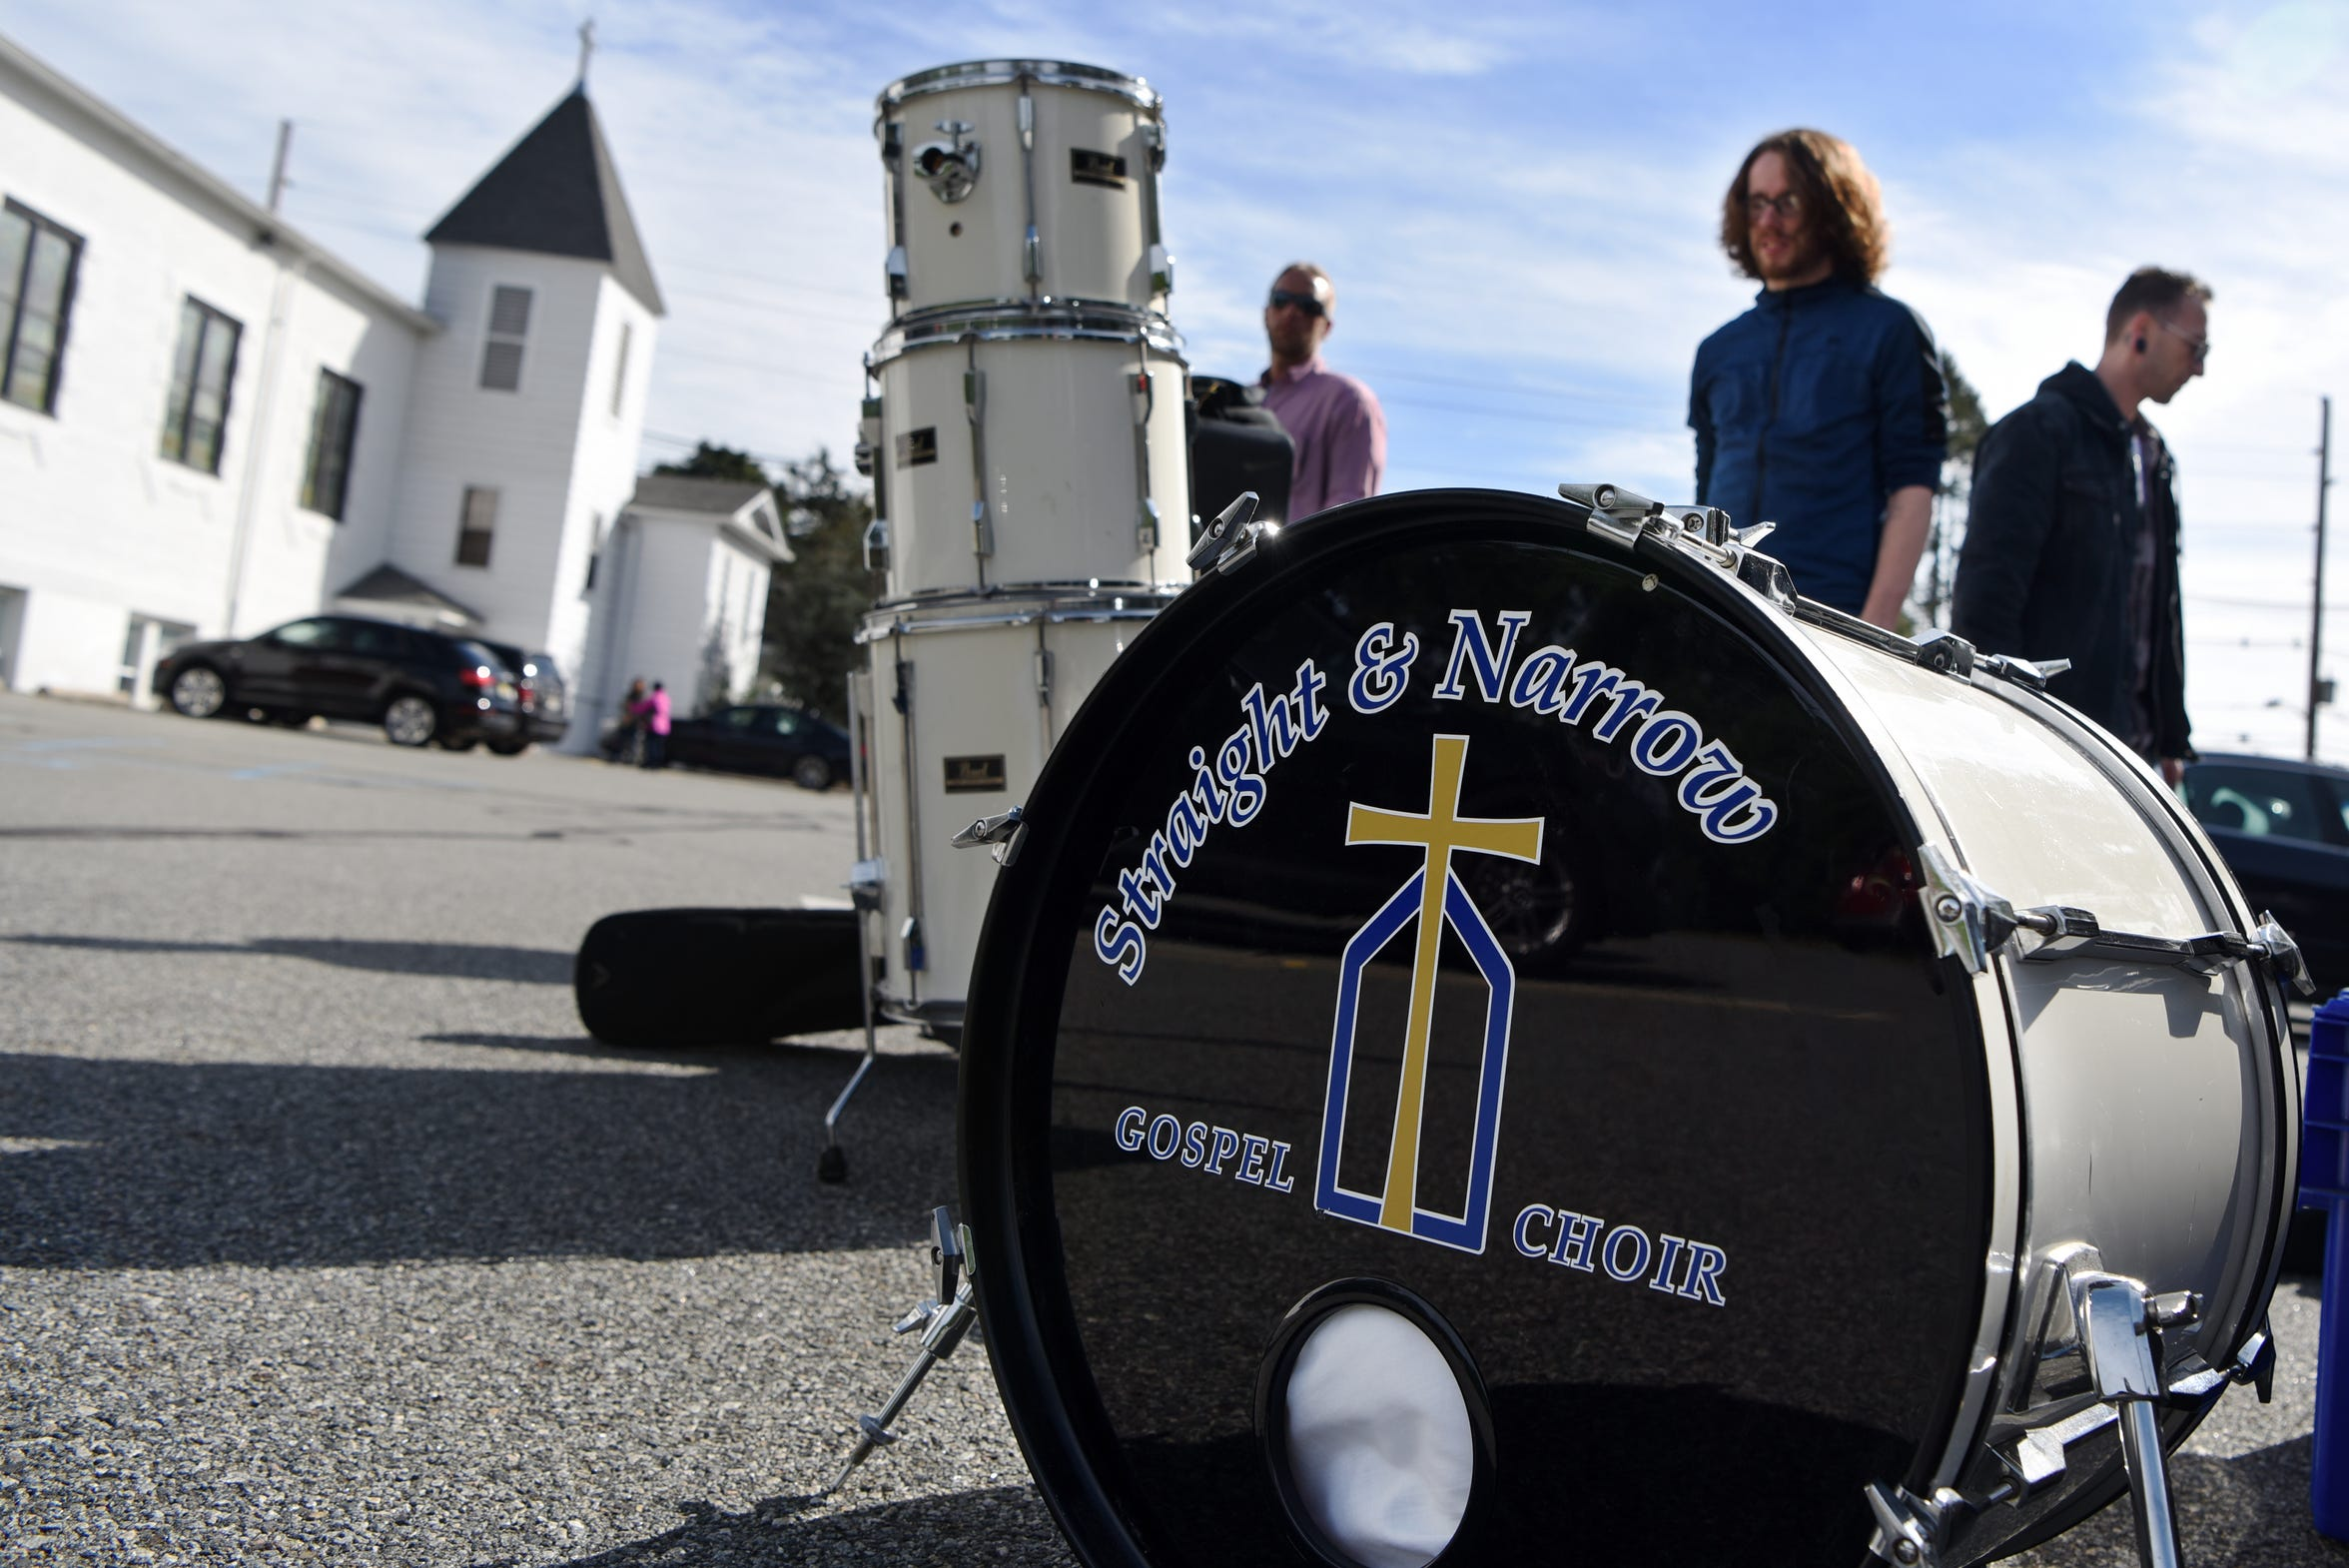 The Straight & Narrow Gospel Choir, which performsregularly at Catholic churches and schools around North Jersey, is the liveliest and most public face of Straight & Narrow Inc., the Catholic agency named for the intersection in Paterson where most of its treatment programs are located.